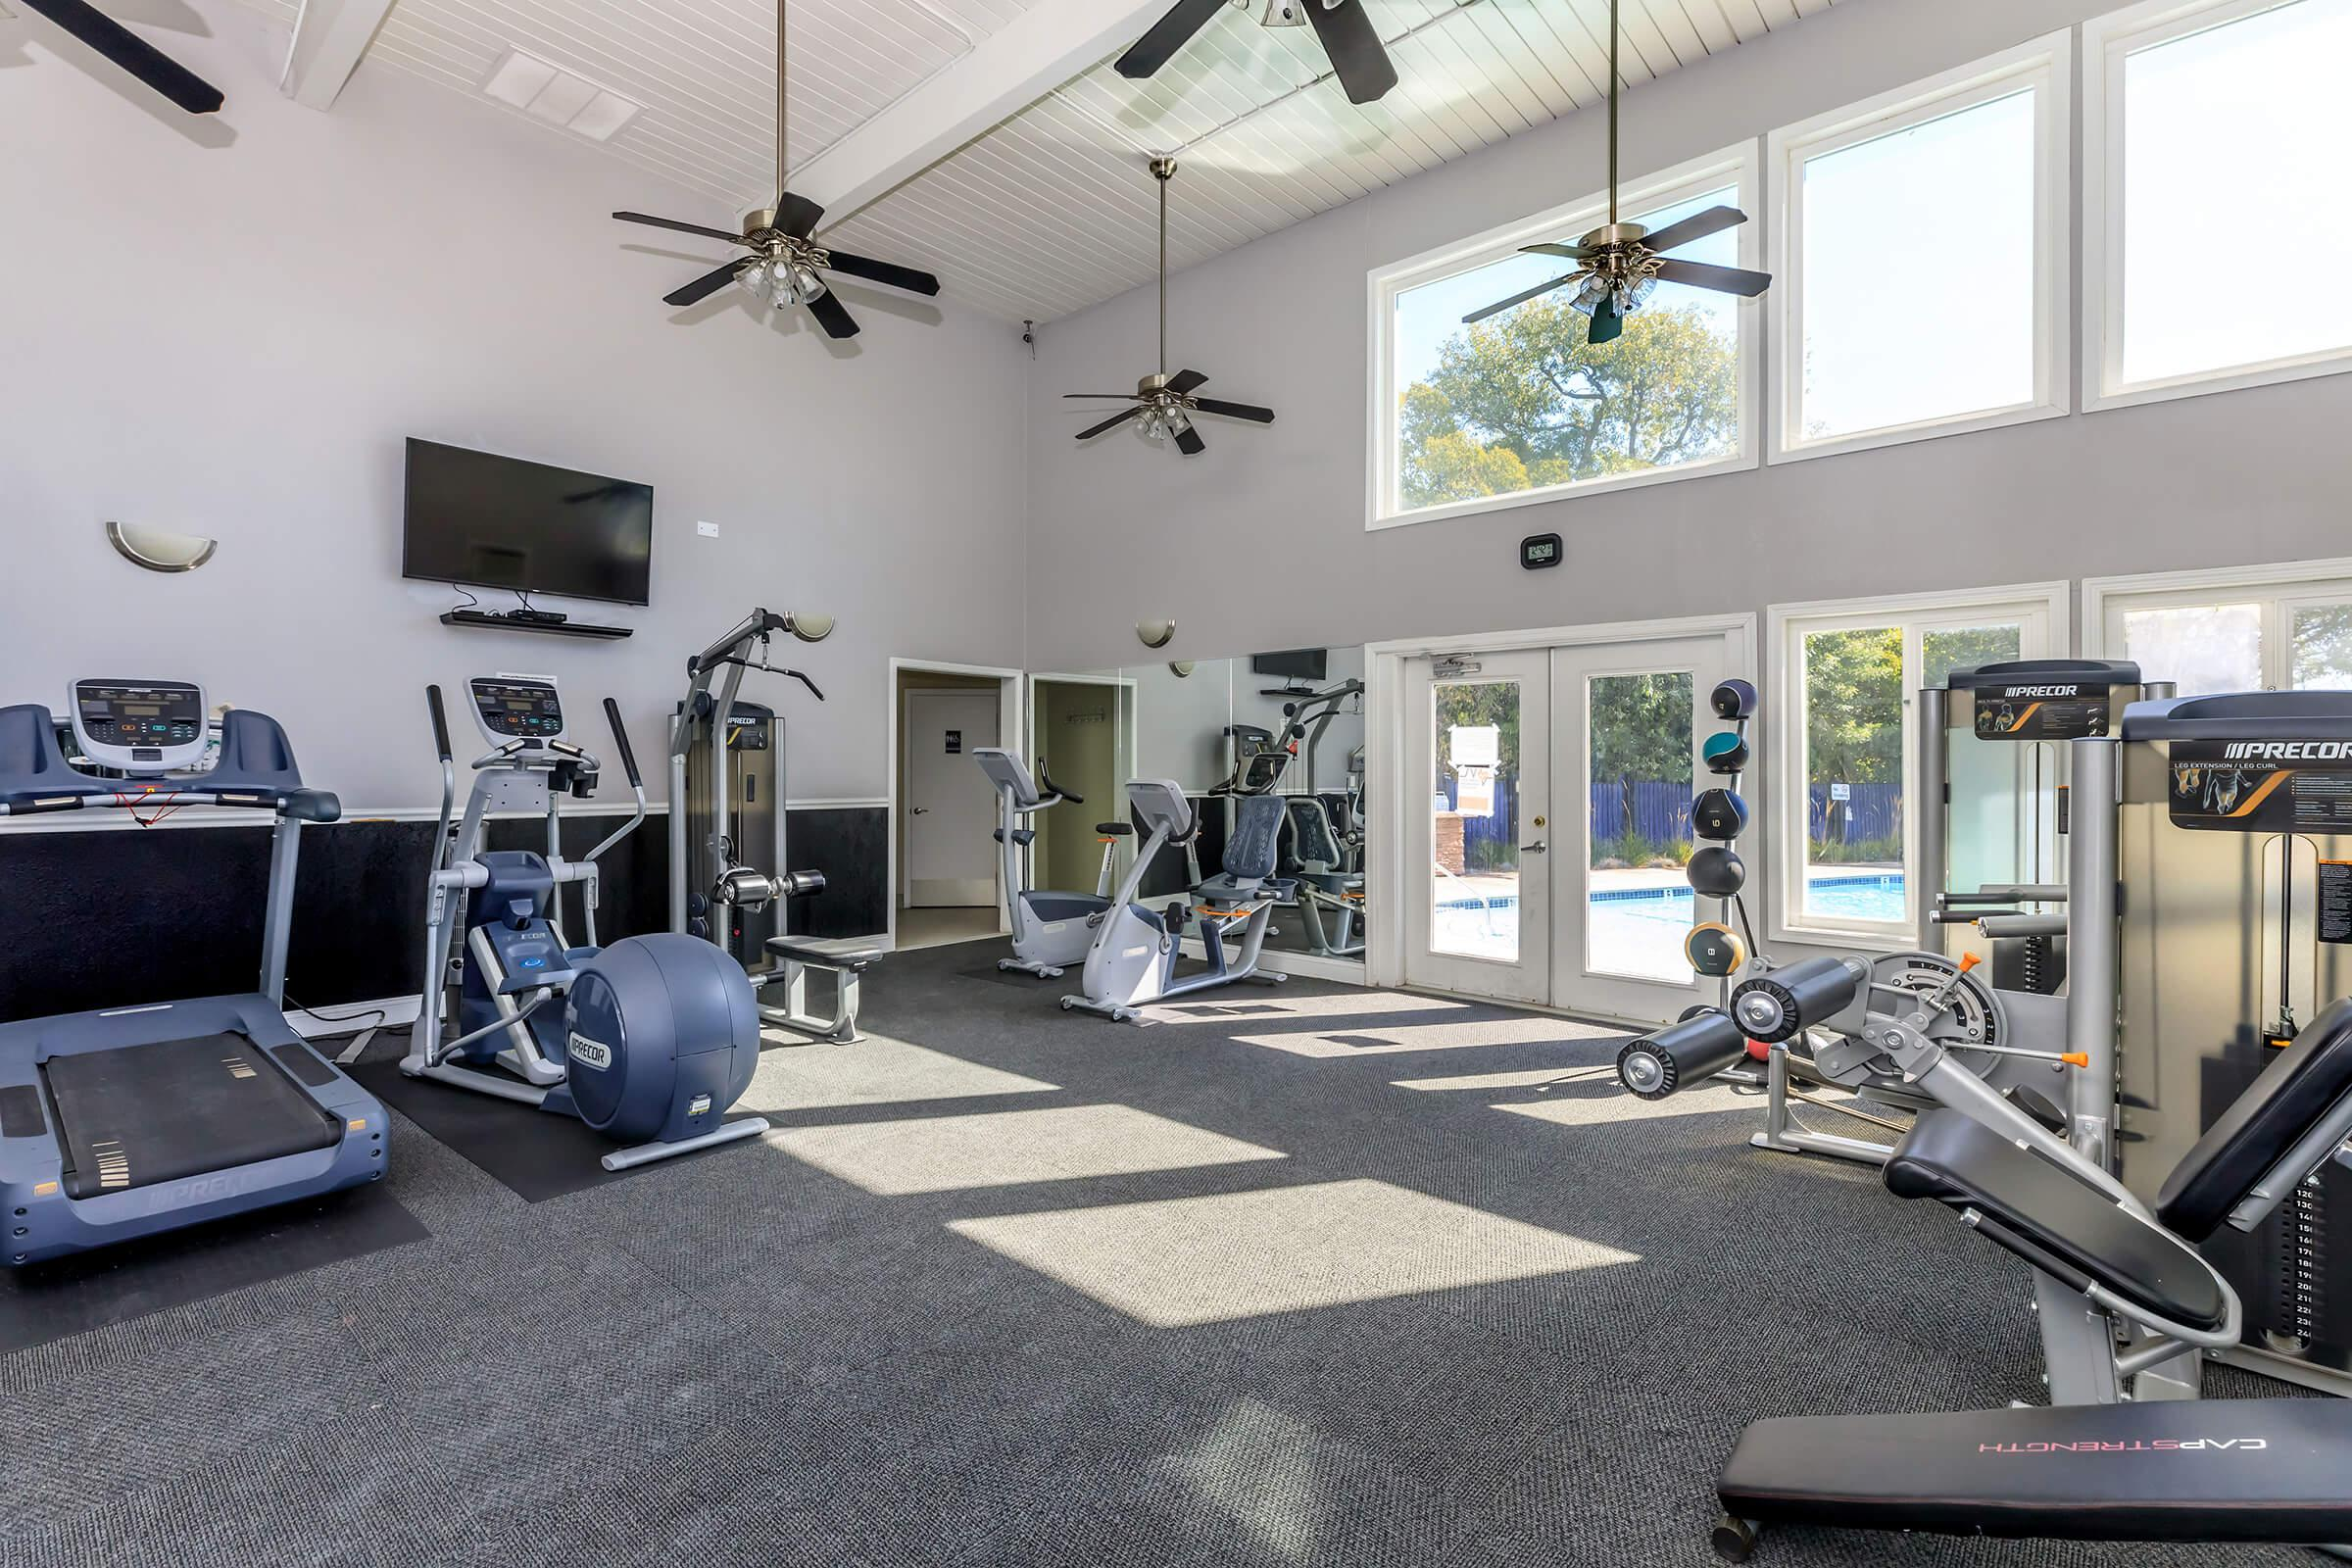 Fitness Center at Fairway Village in San Ramon CA